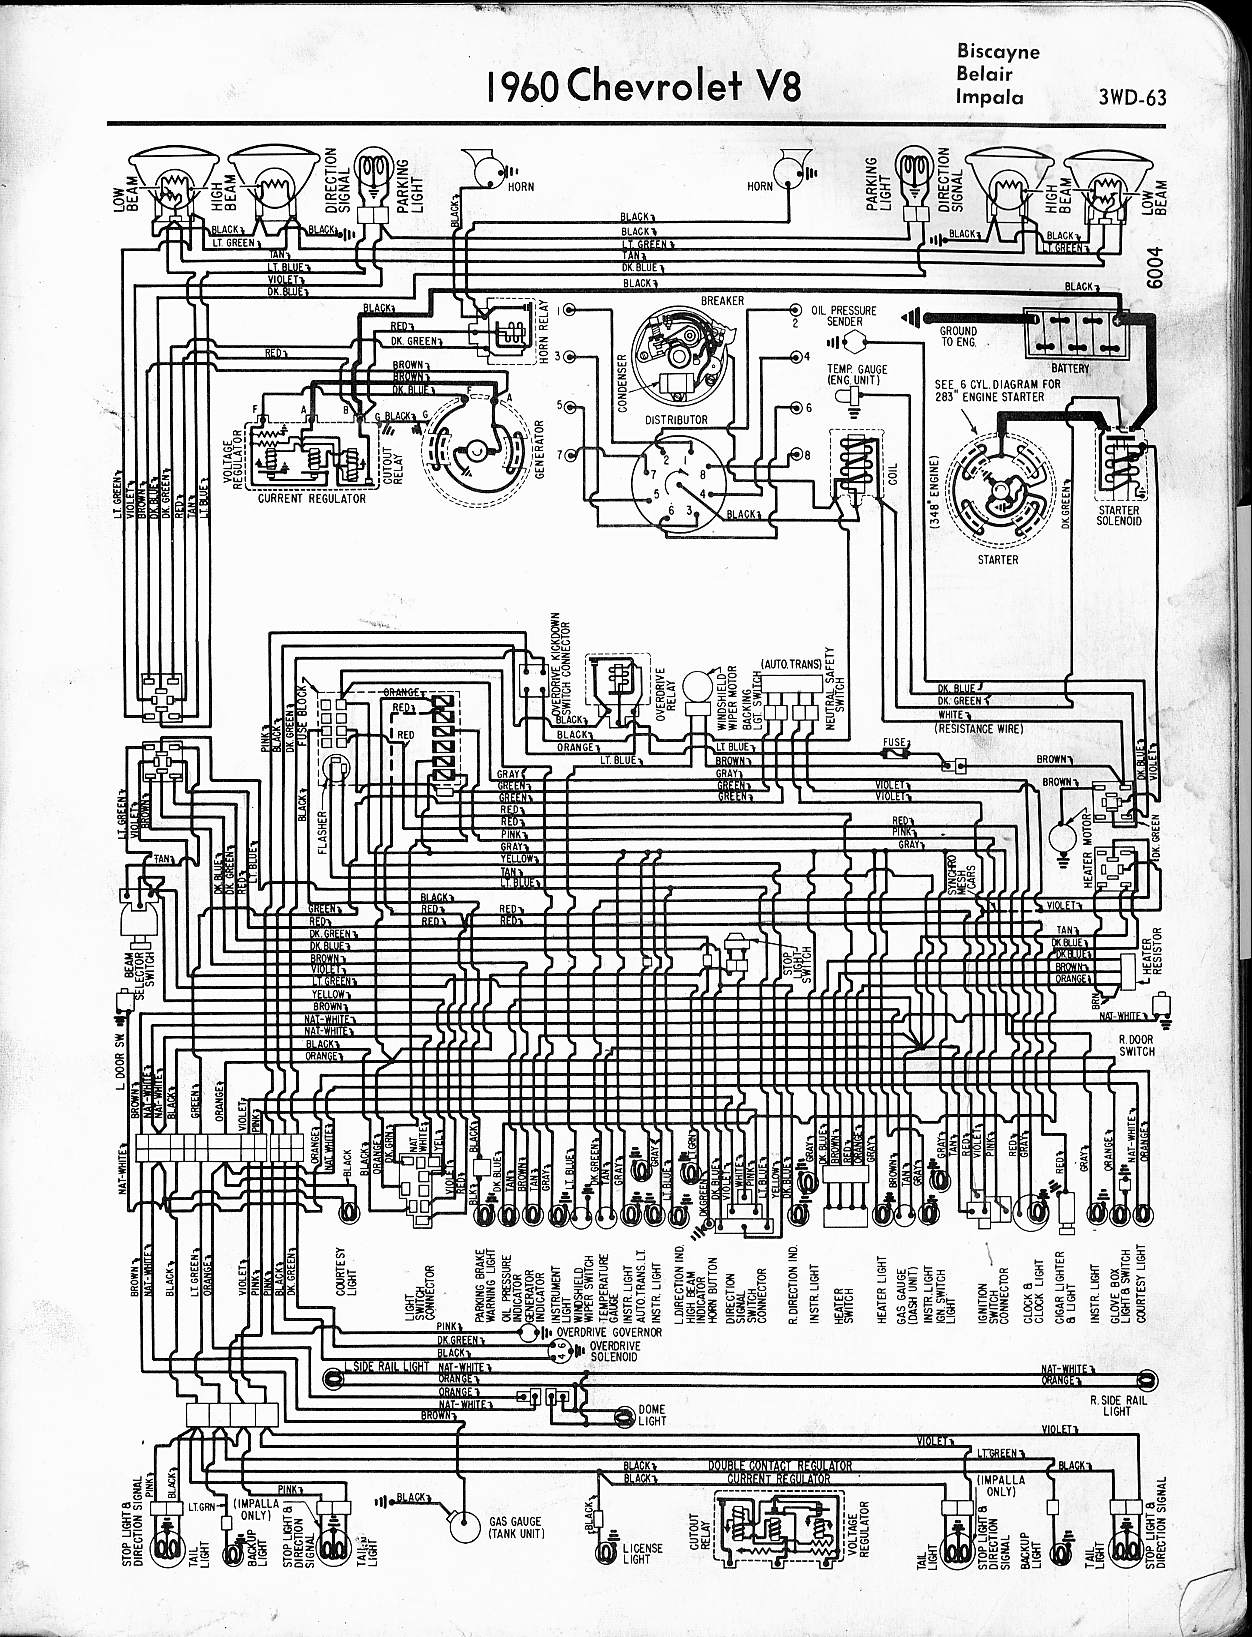 1960 Pontiac Wiring Diagram Electricity Basics 101 1964 57 65 Chevy Diagrams Rh Oldcarmanualproject Com 1970